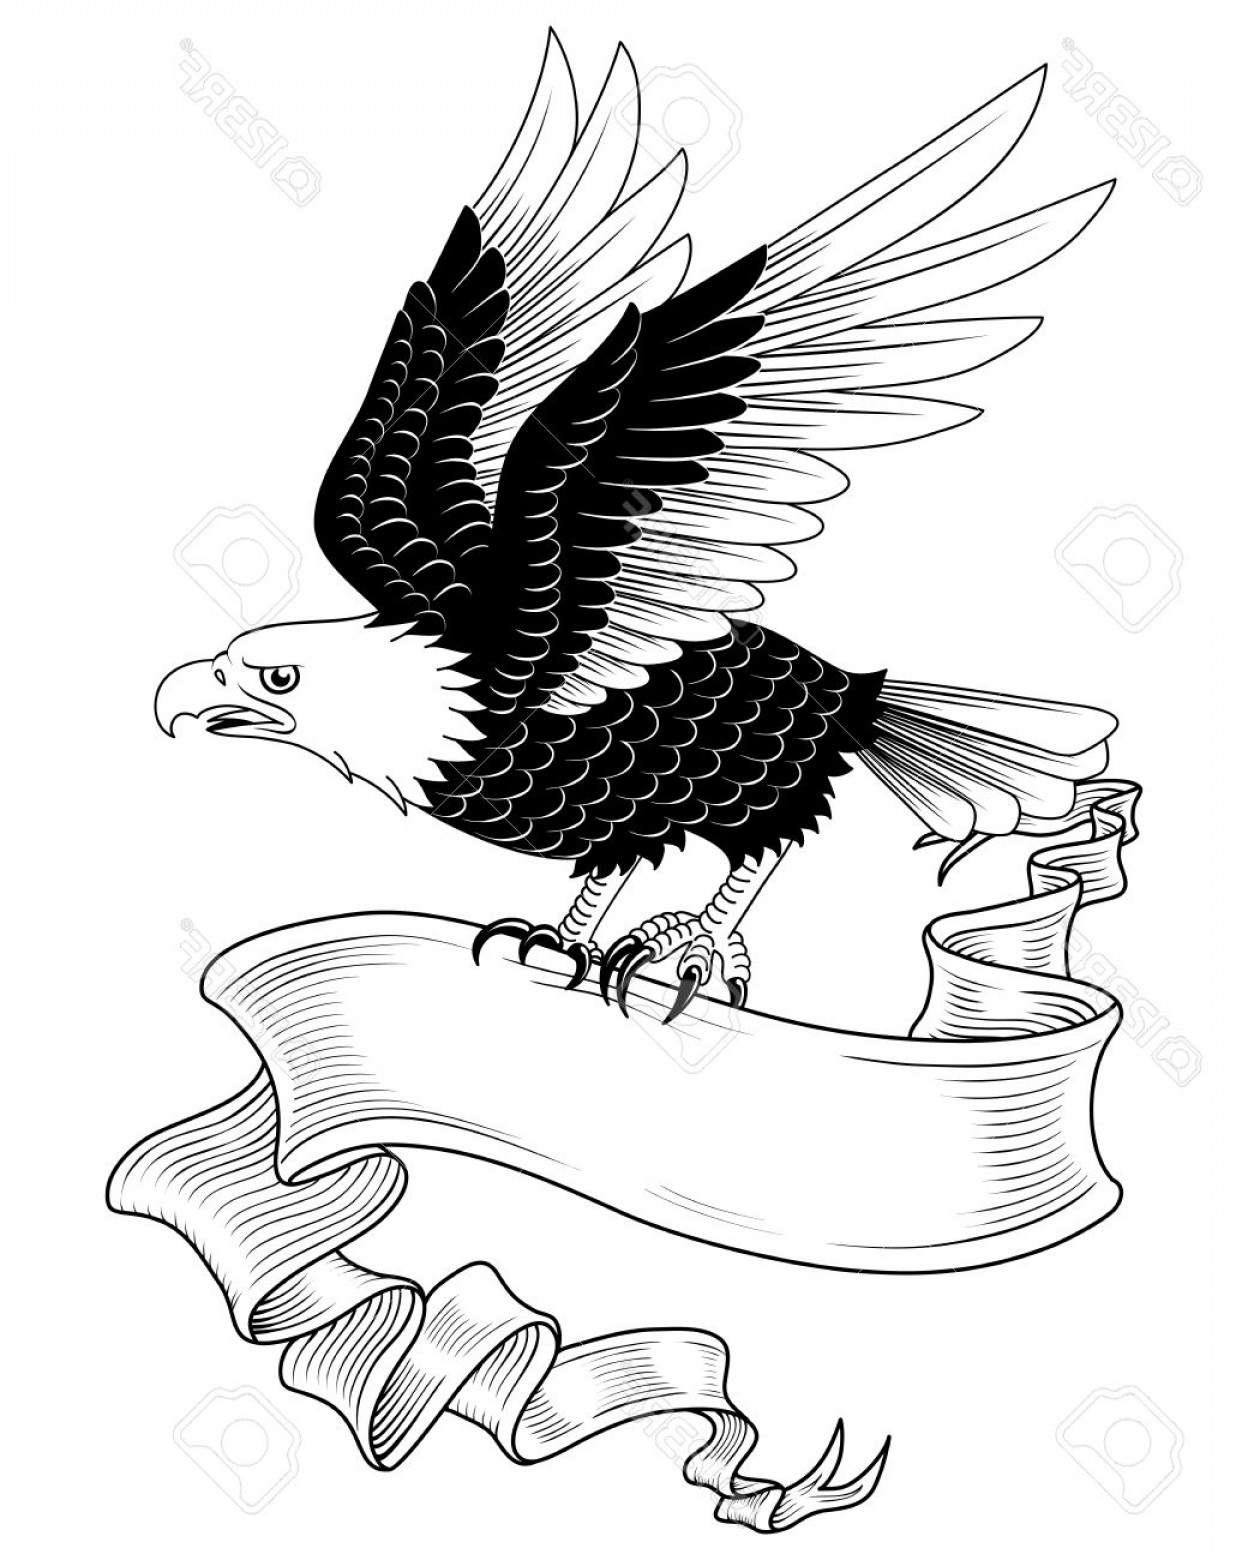 Eagle Banner Vector: Photostock Vector Eagle With Banner Hand Drawn Eagle Holding A Banner